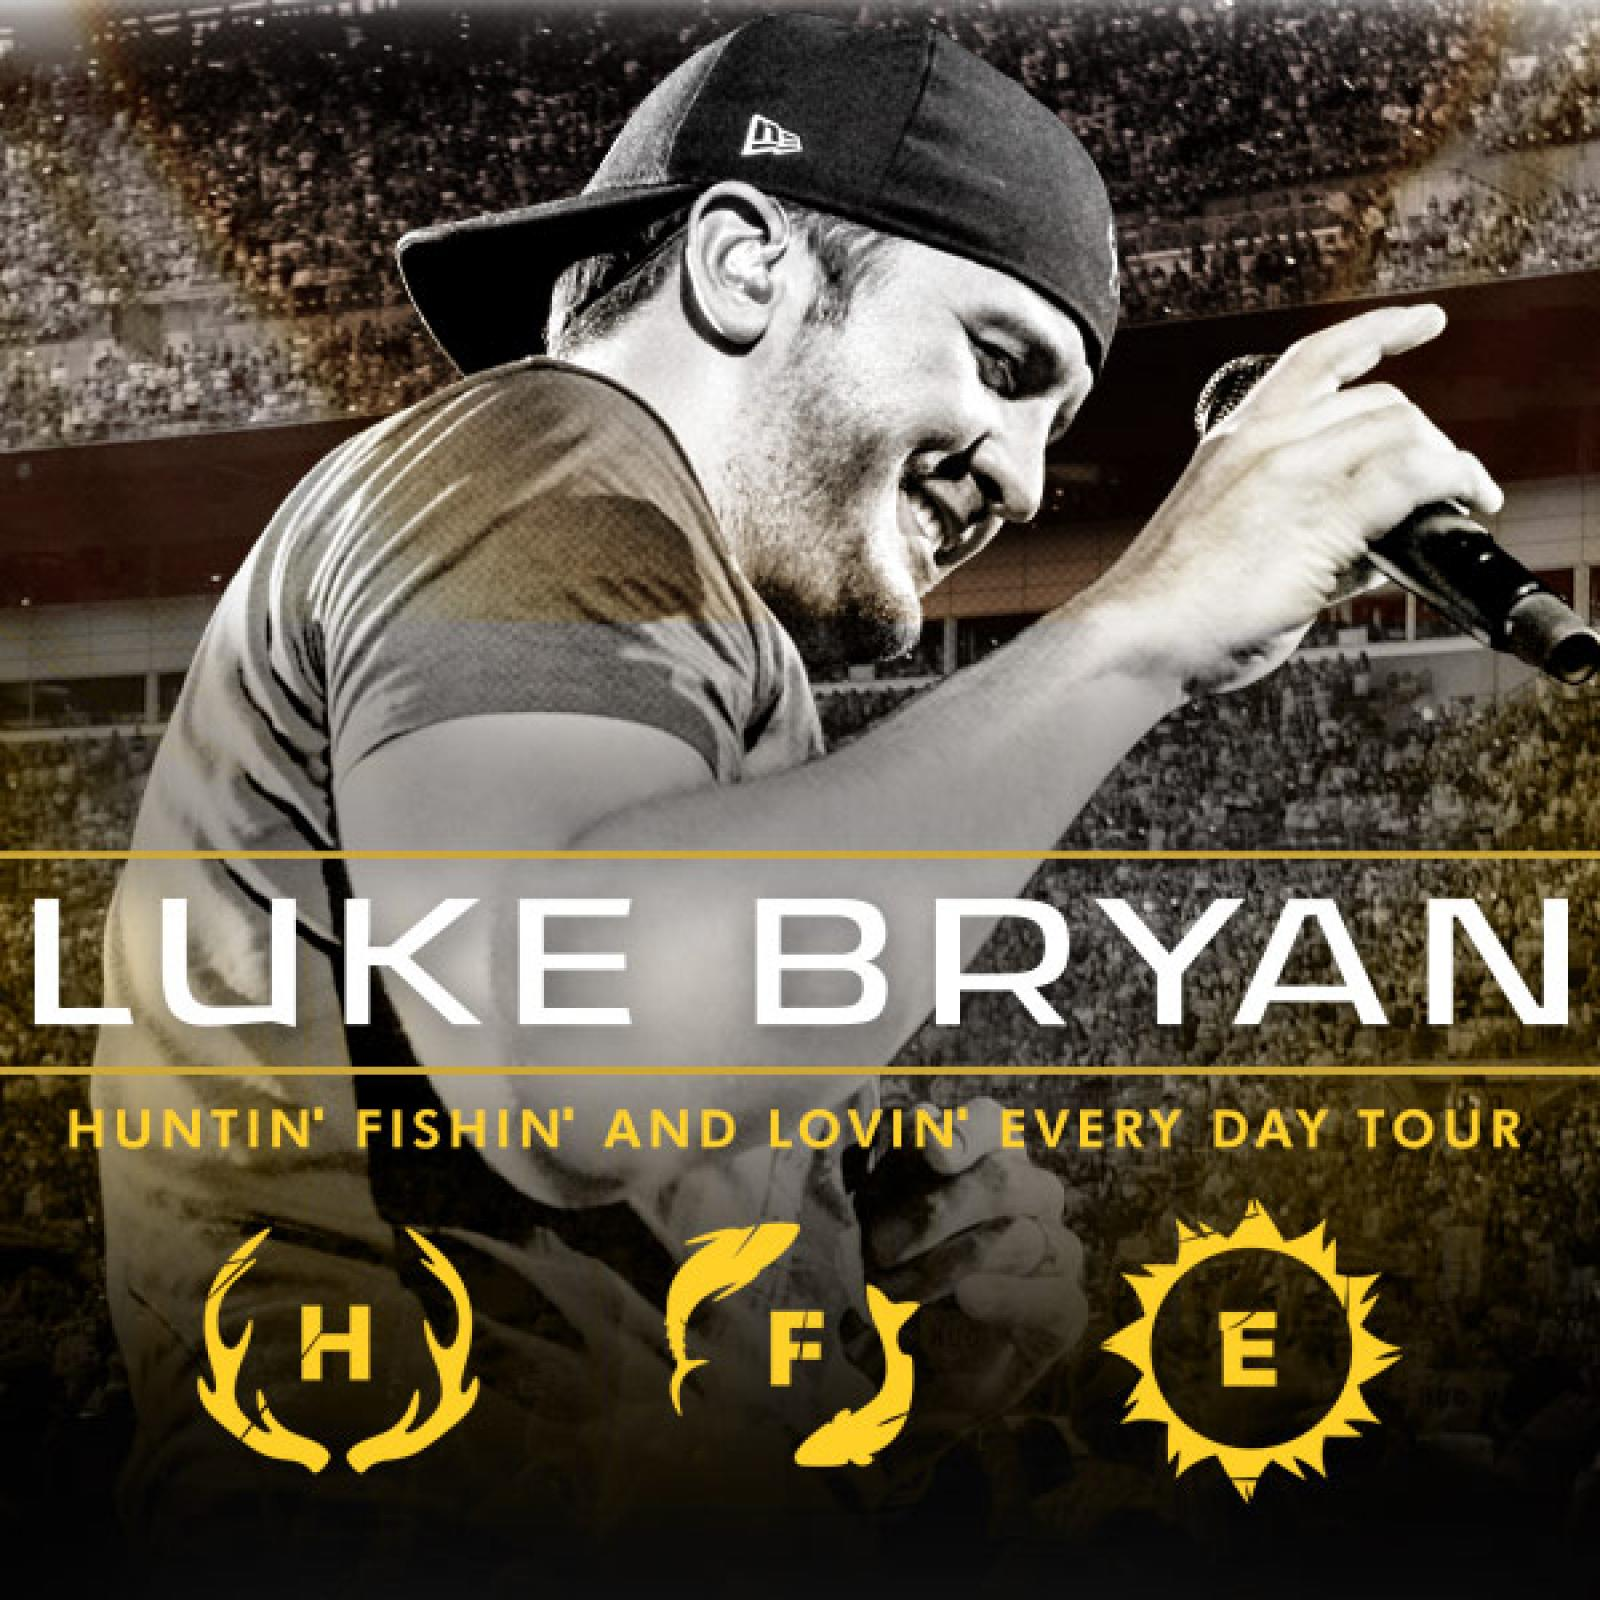 Luke's Tour Launch in Nashville Adds Second Show After Morning Sell-Out!